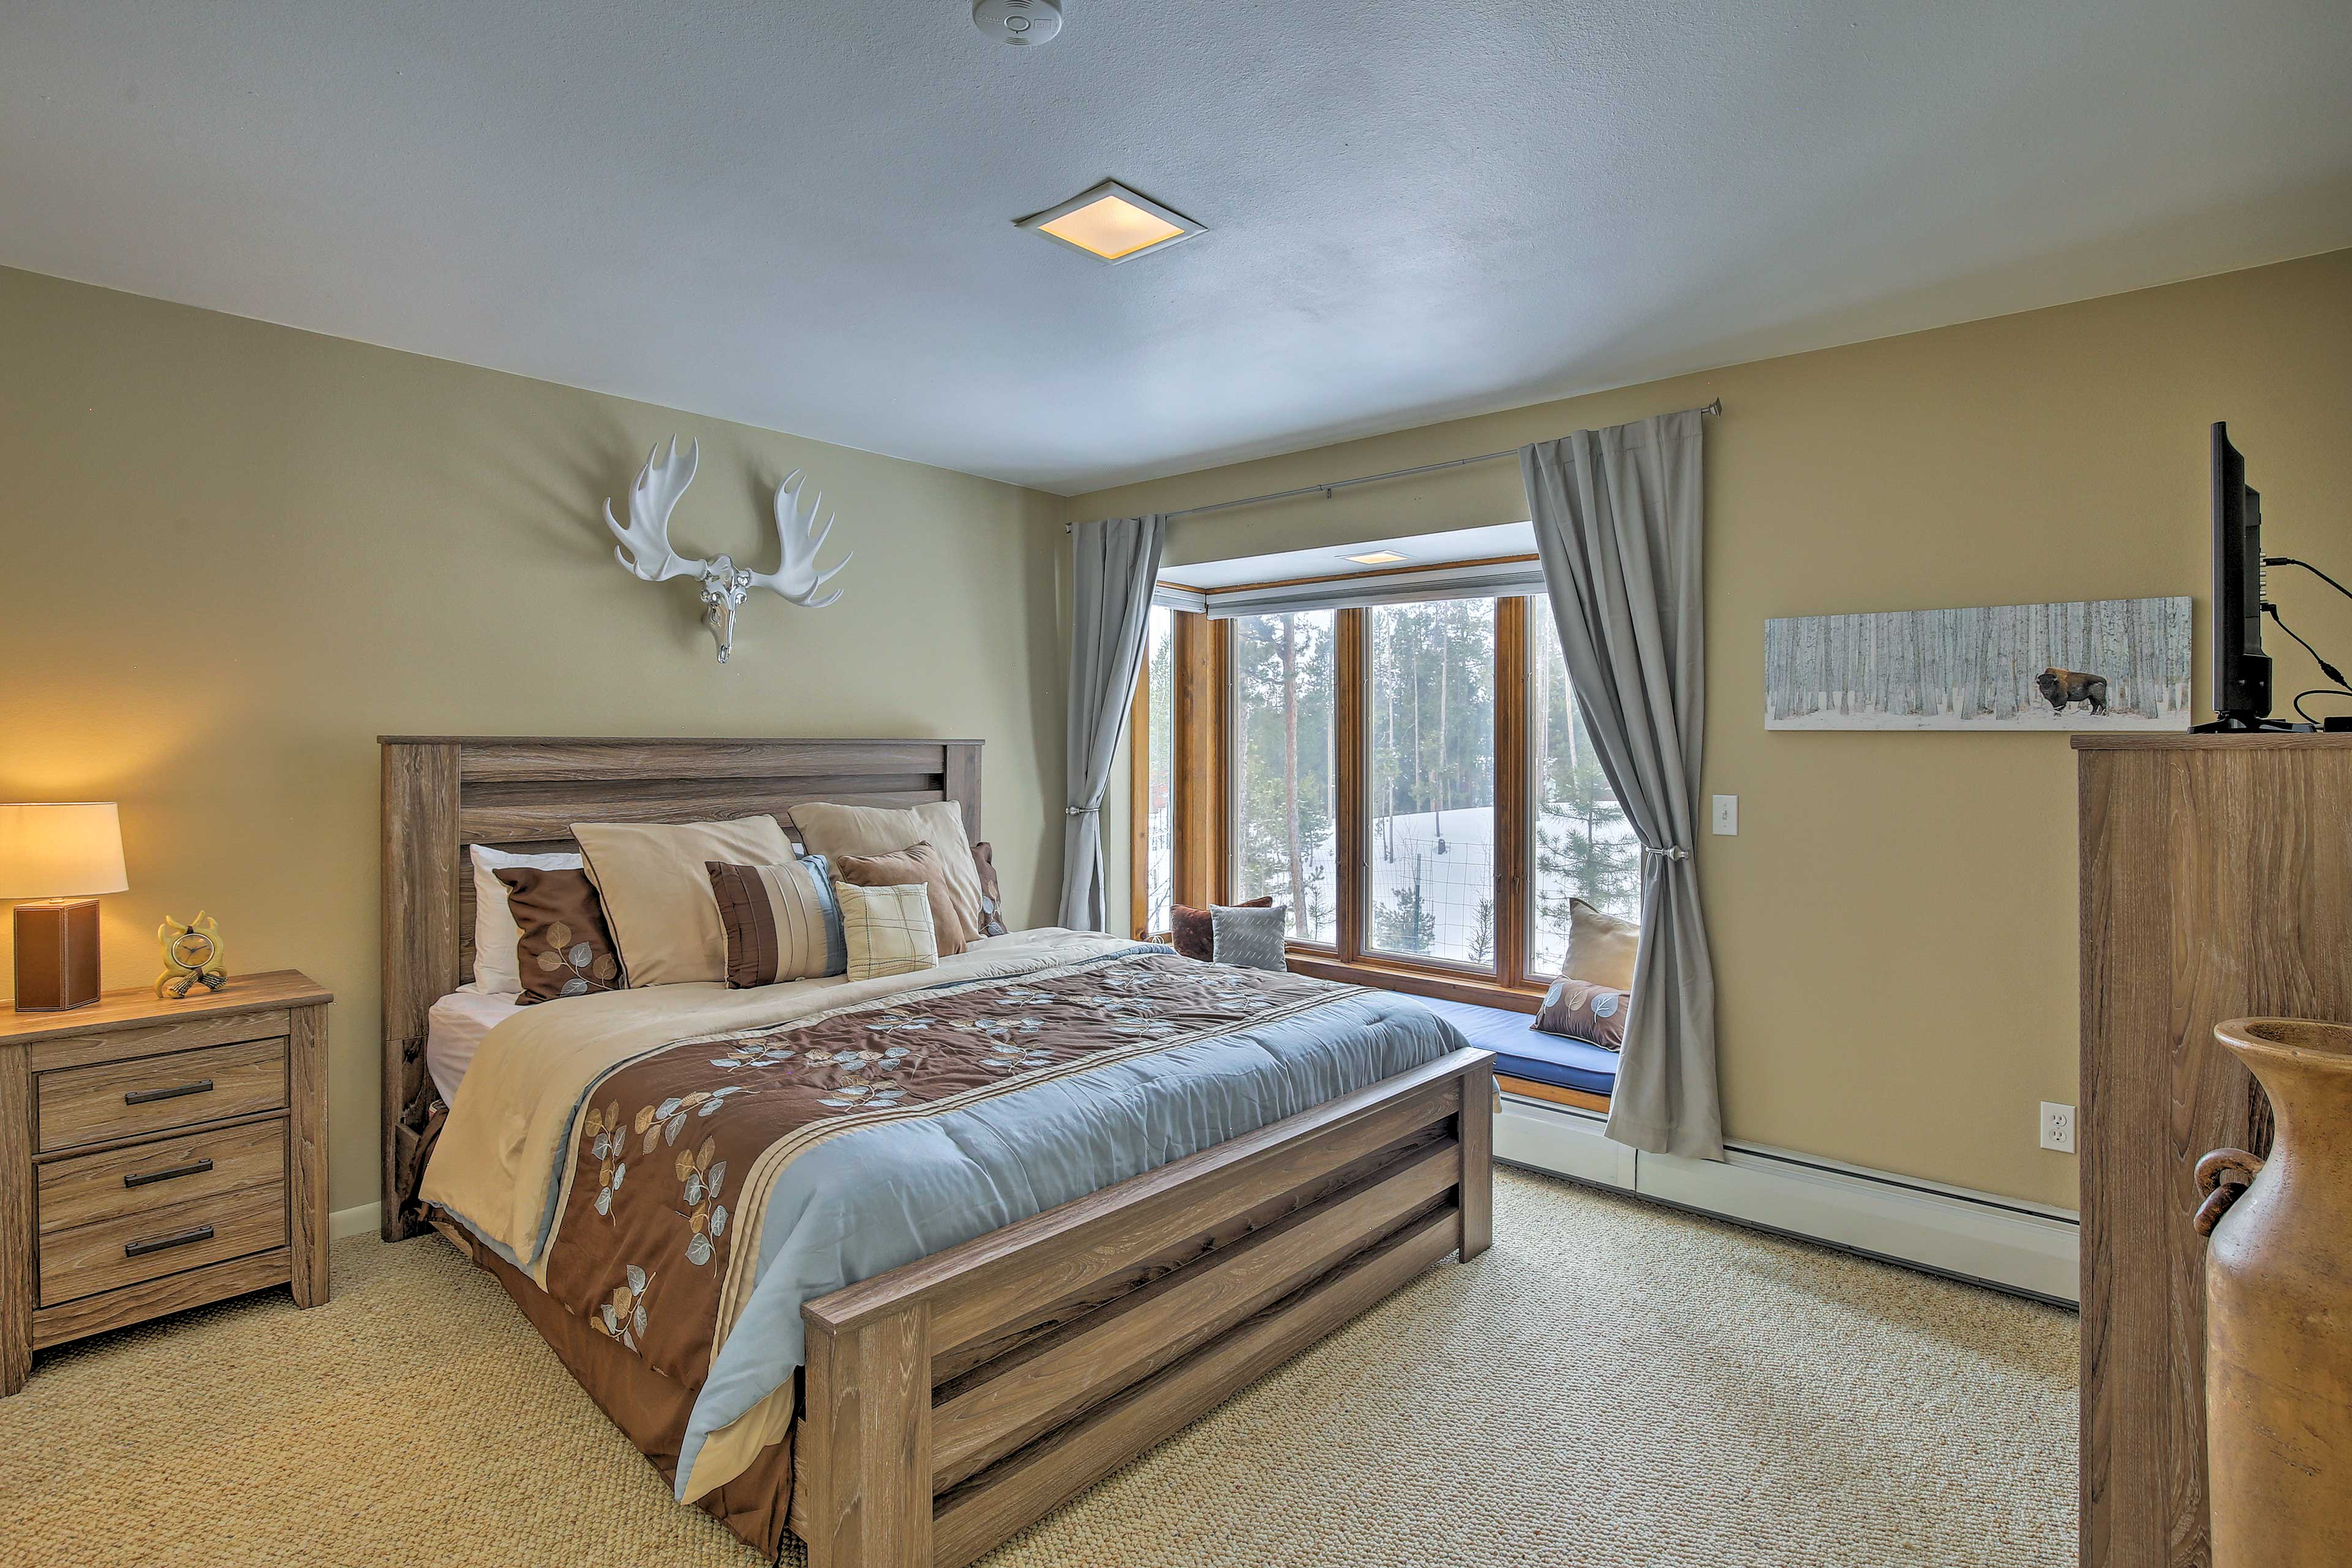 Drift off to dreamland in this plush king-sized bed.